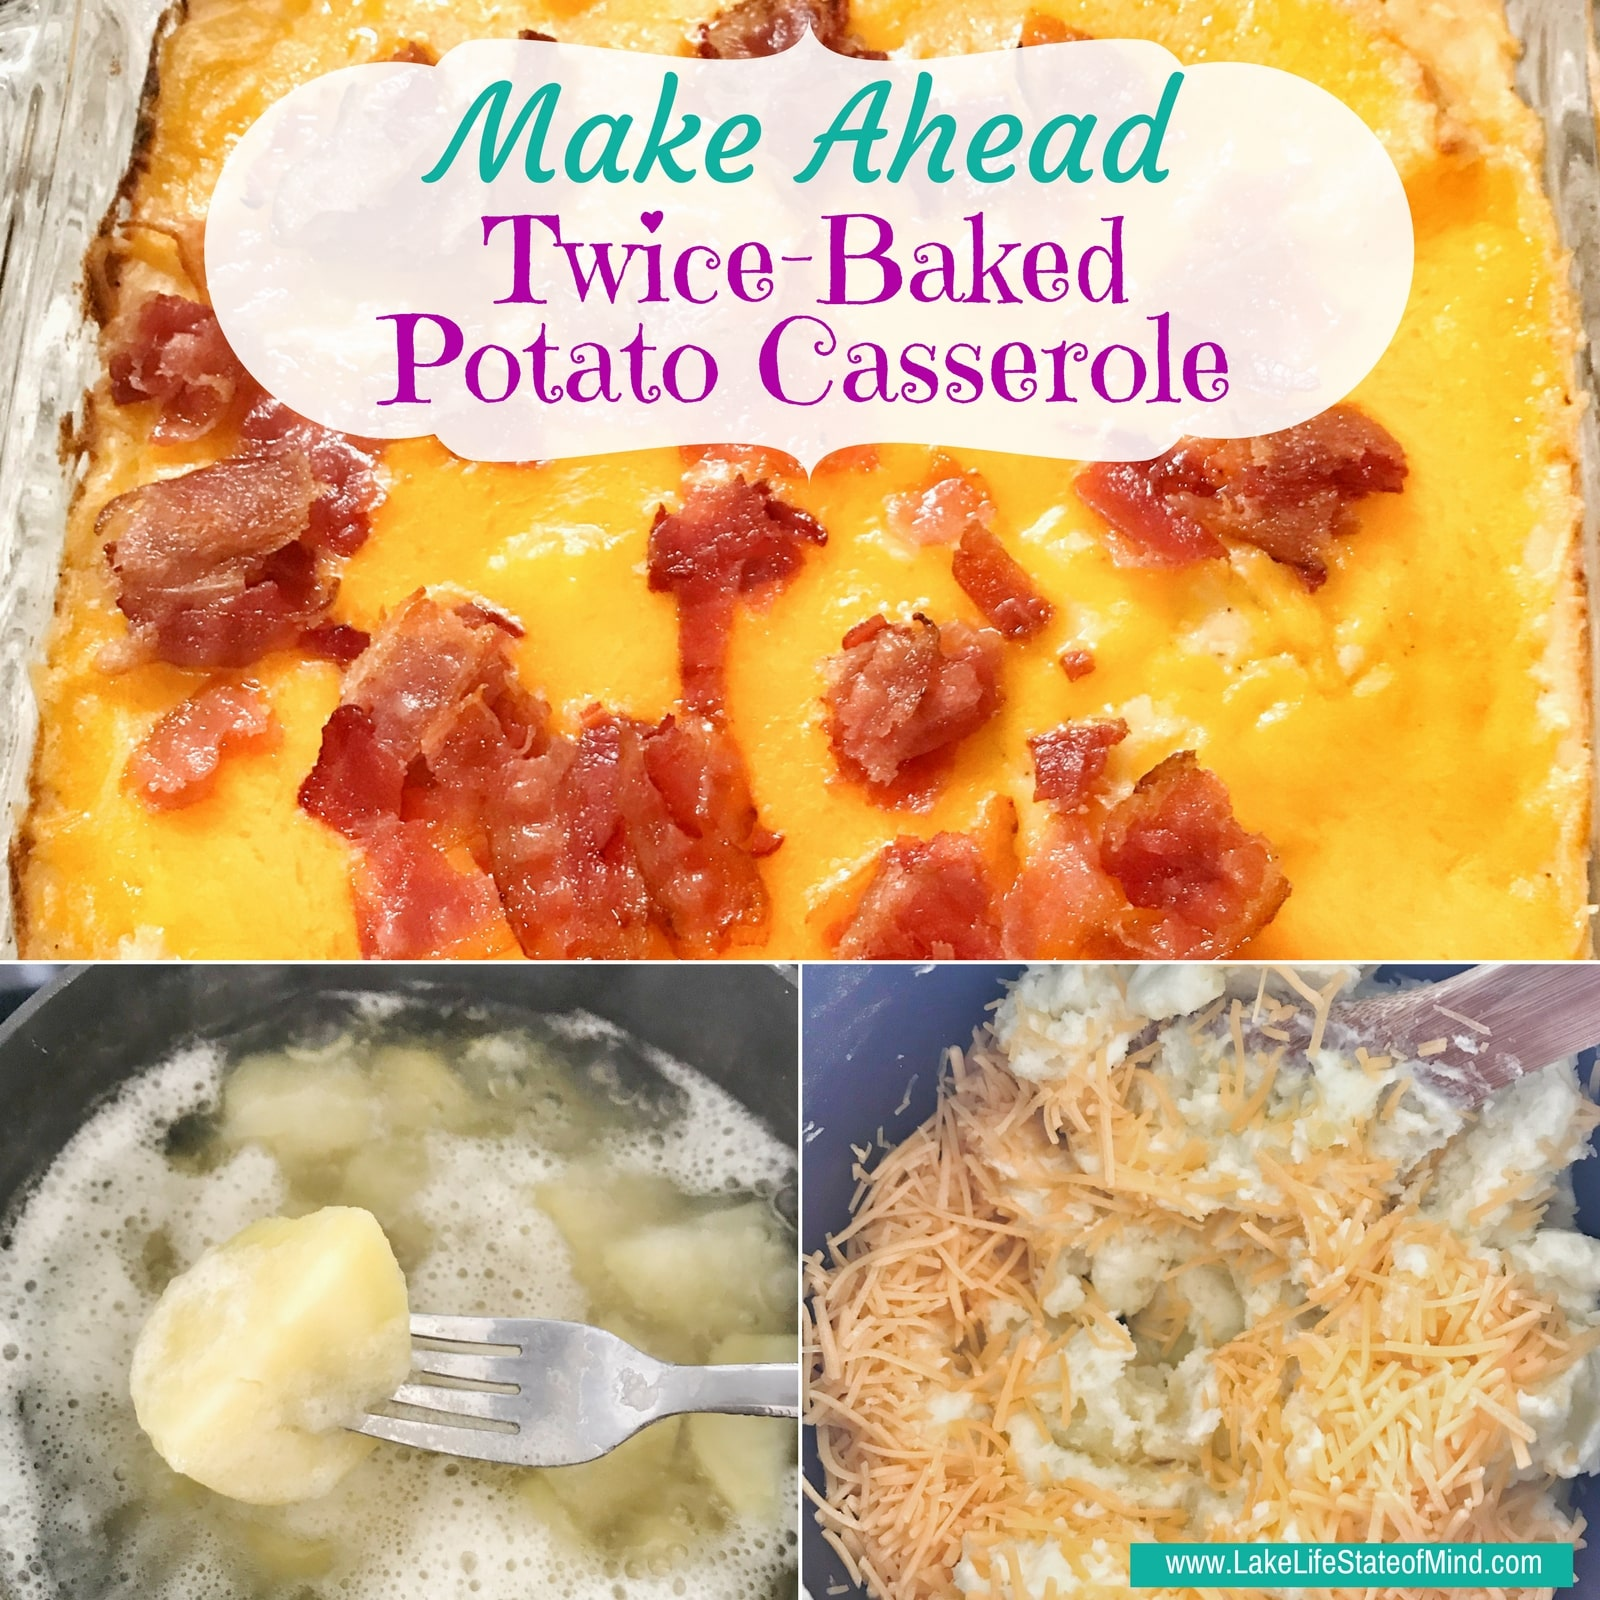 Make Ahead Twice-Baked Potato Casserole